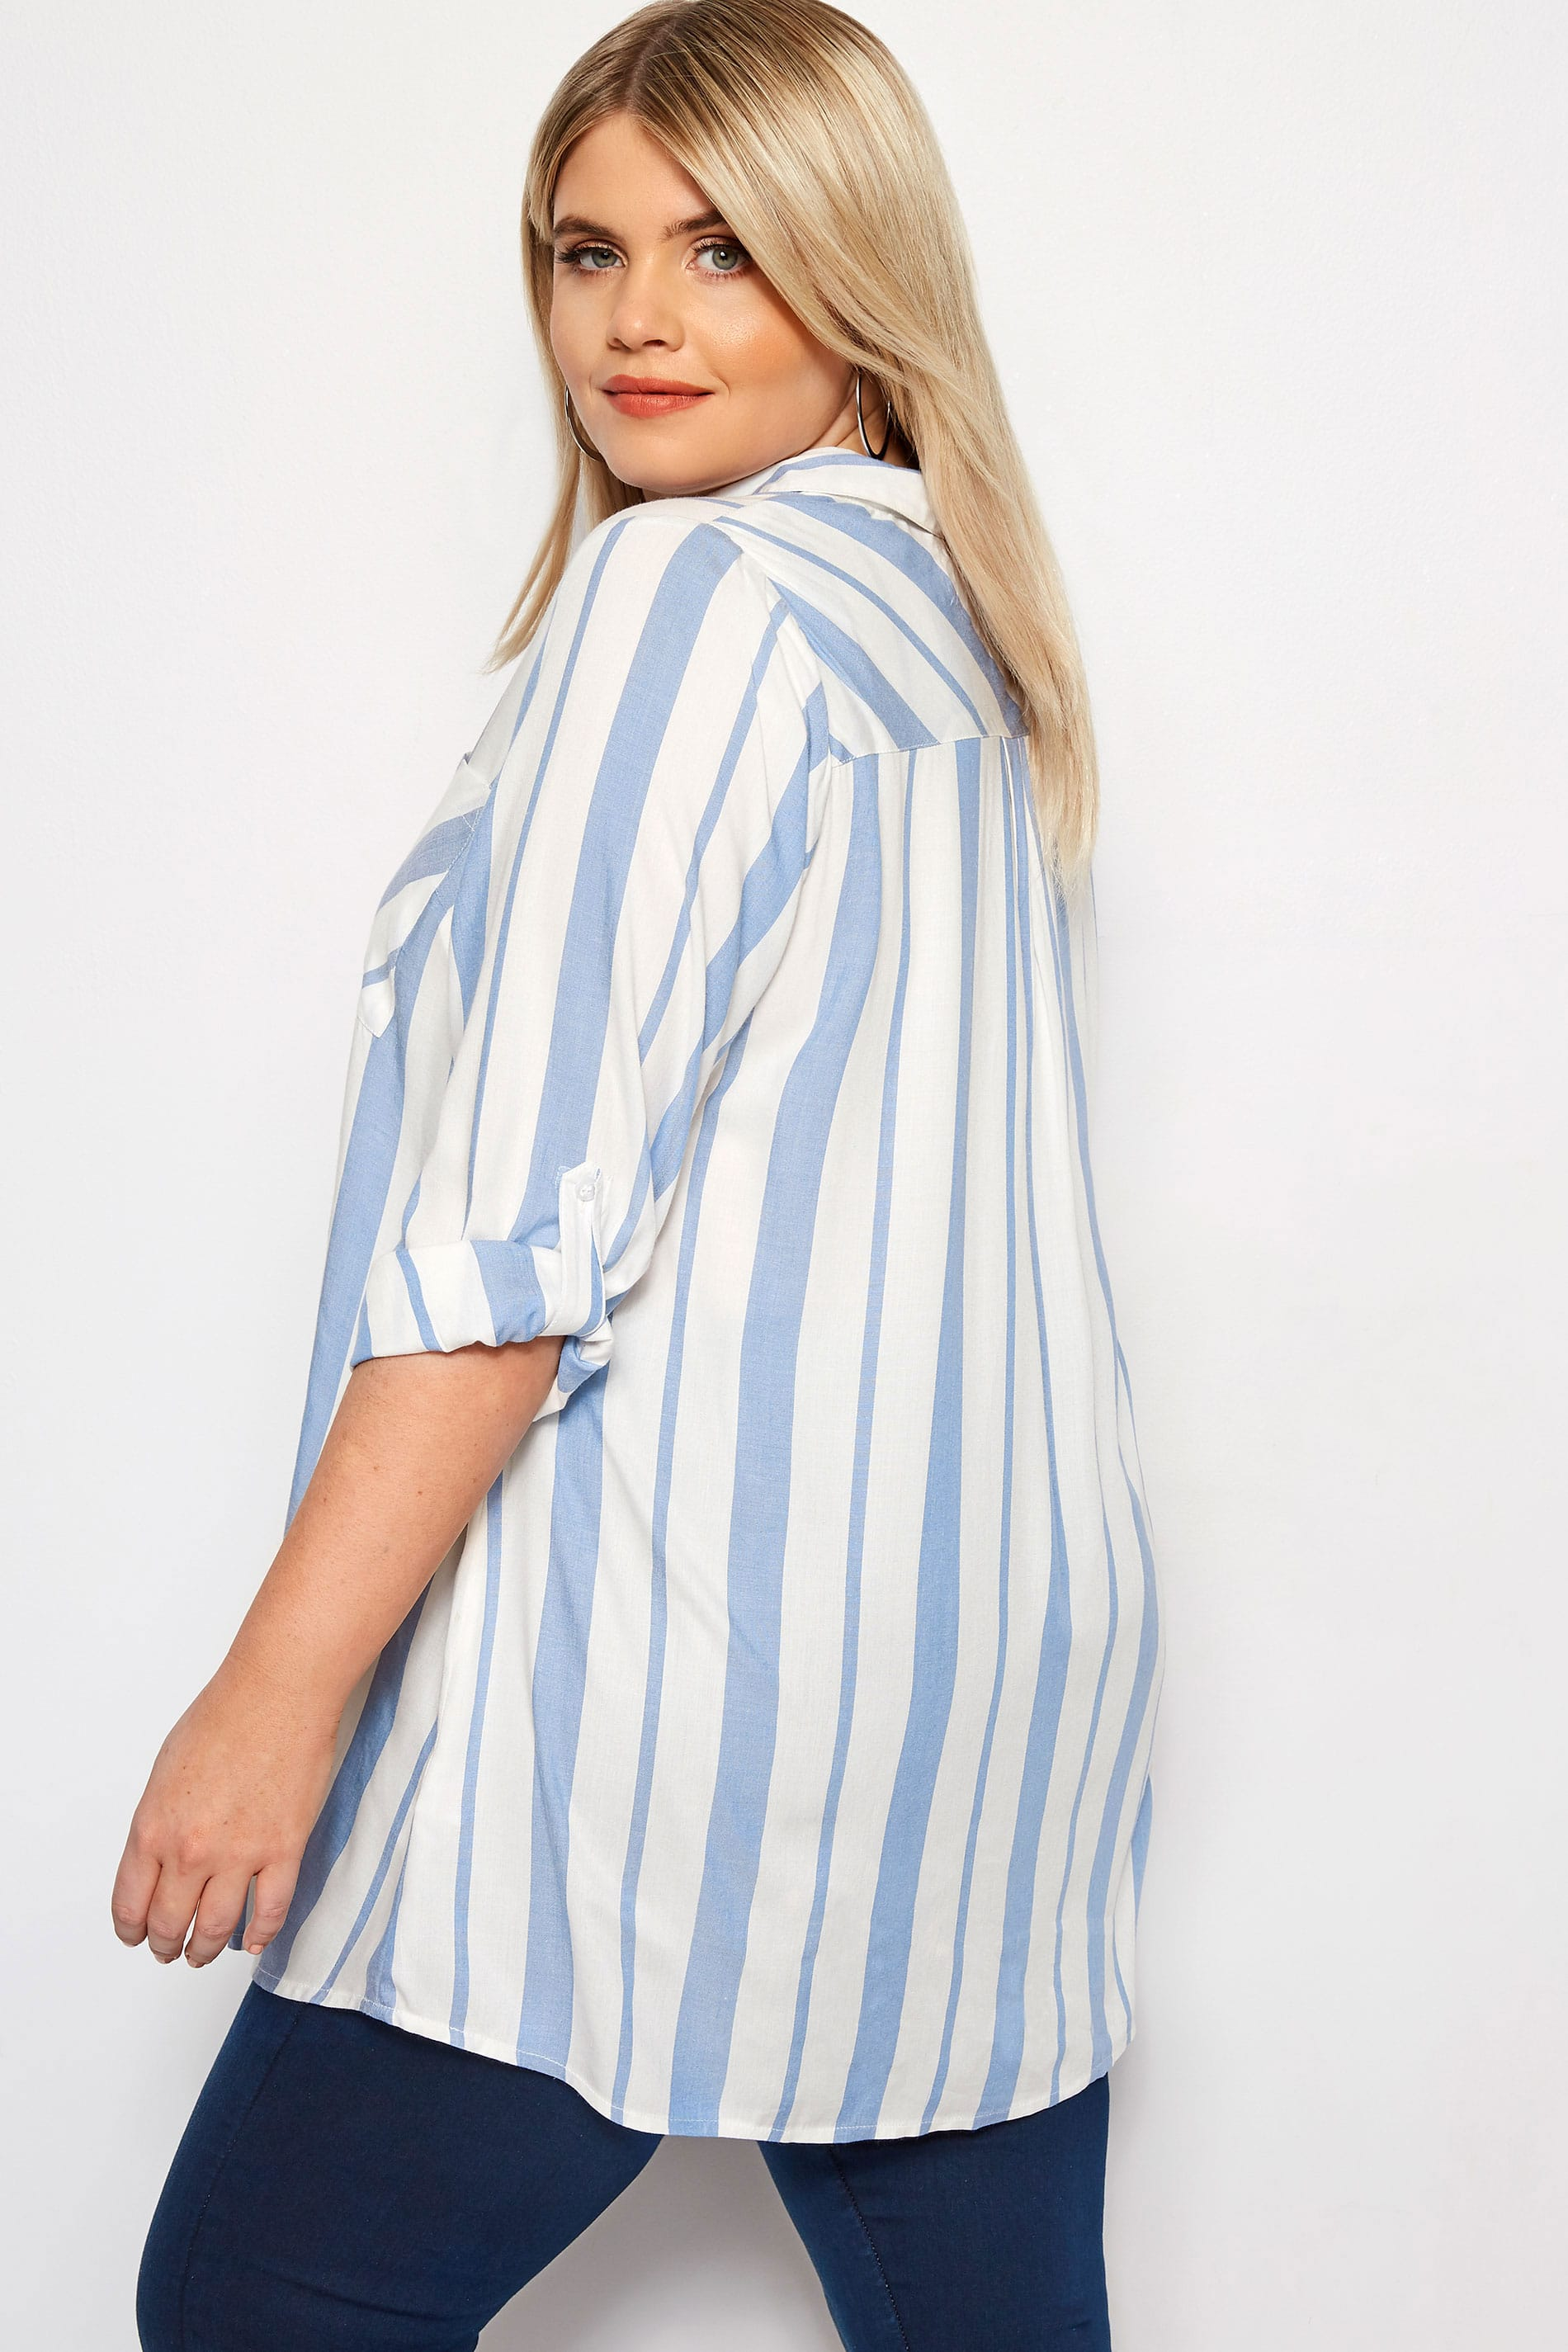 ee23e7248346 Blue & White Oversized Striped Shirt | Sizes 16 to 36 | Yours Clothing